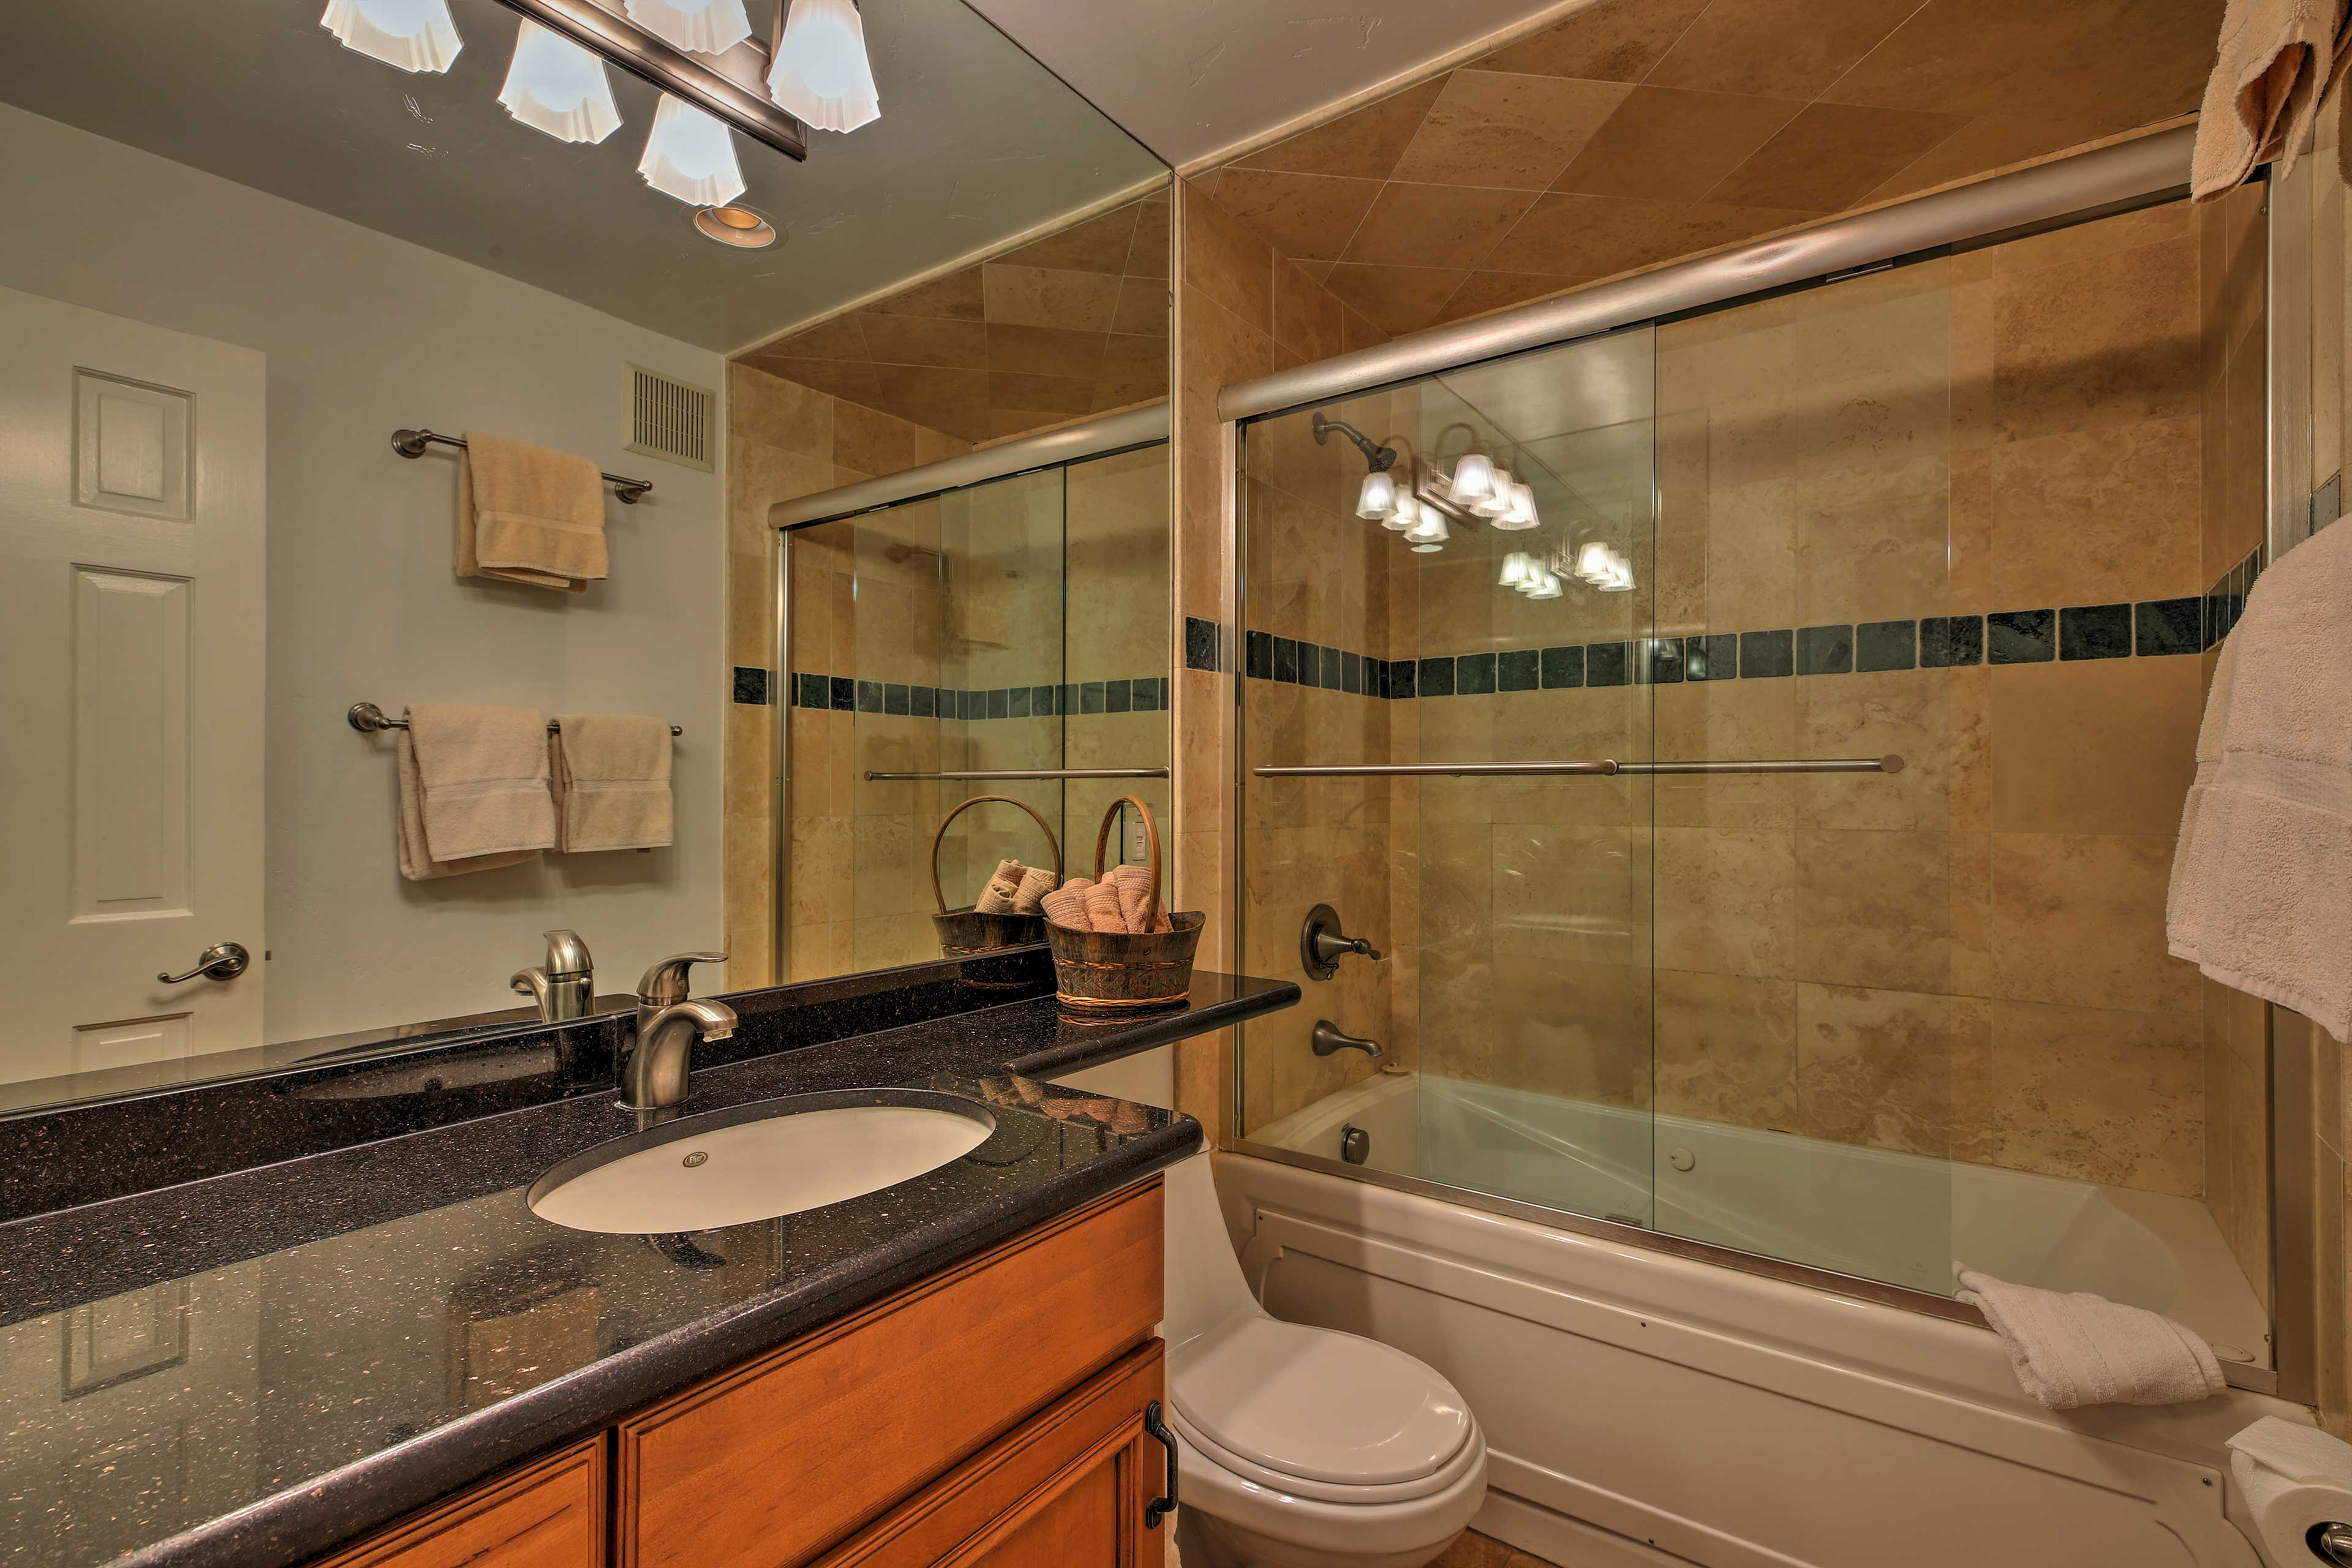 Utilize the single vanity and shower/tub combo featured in the second bathroom.